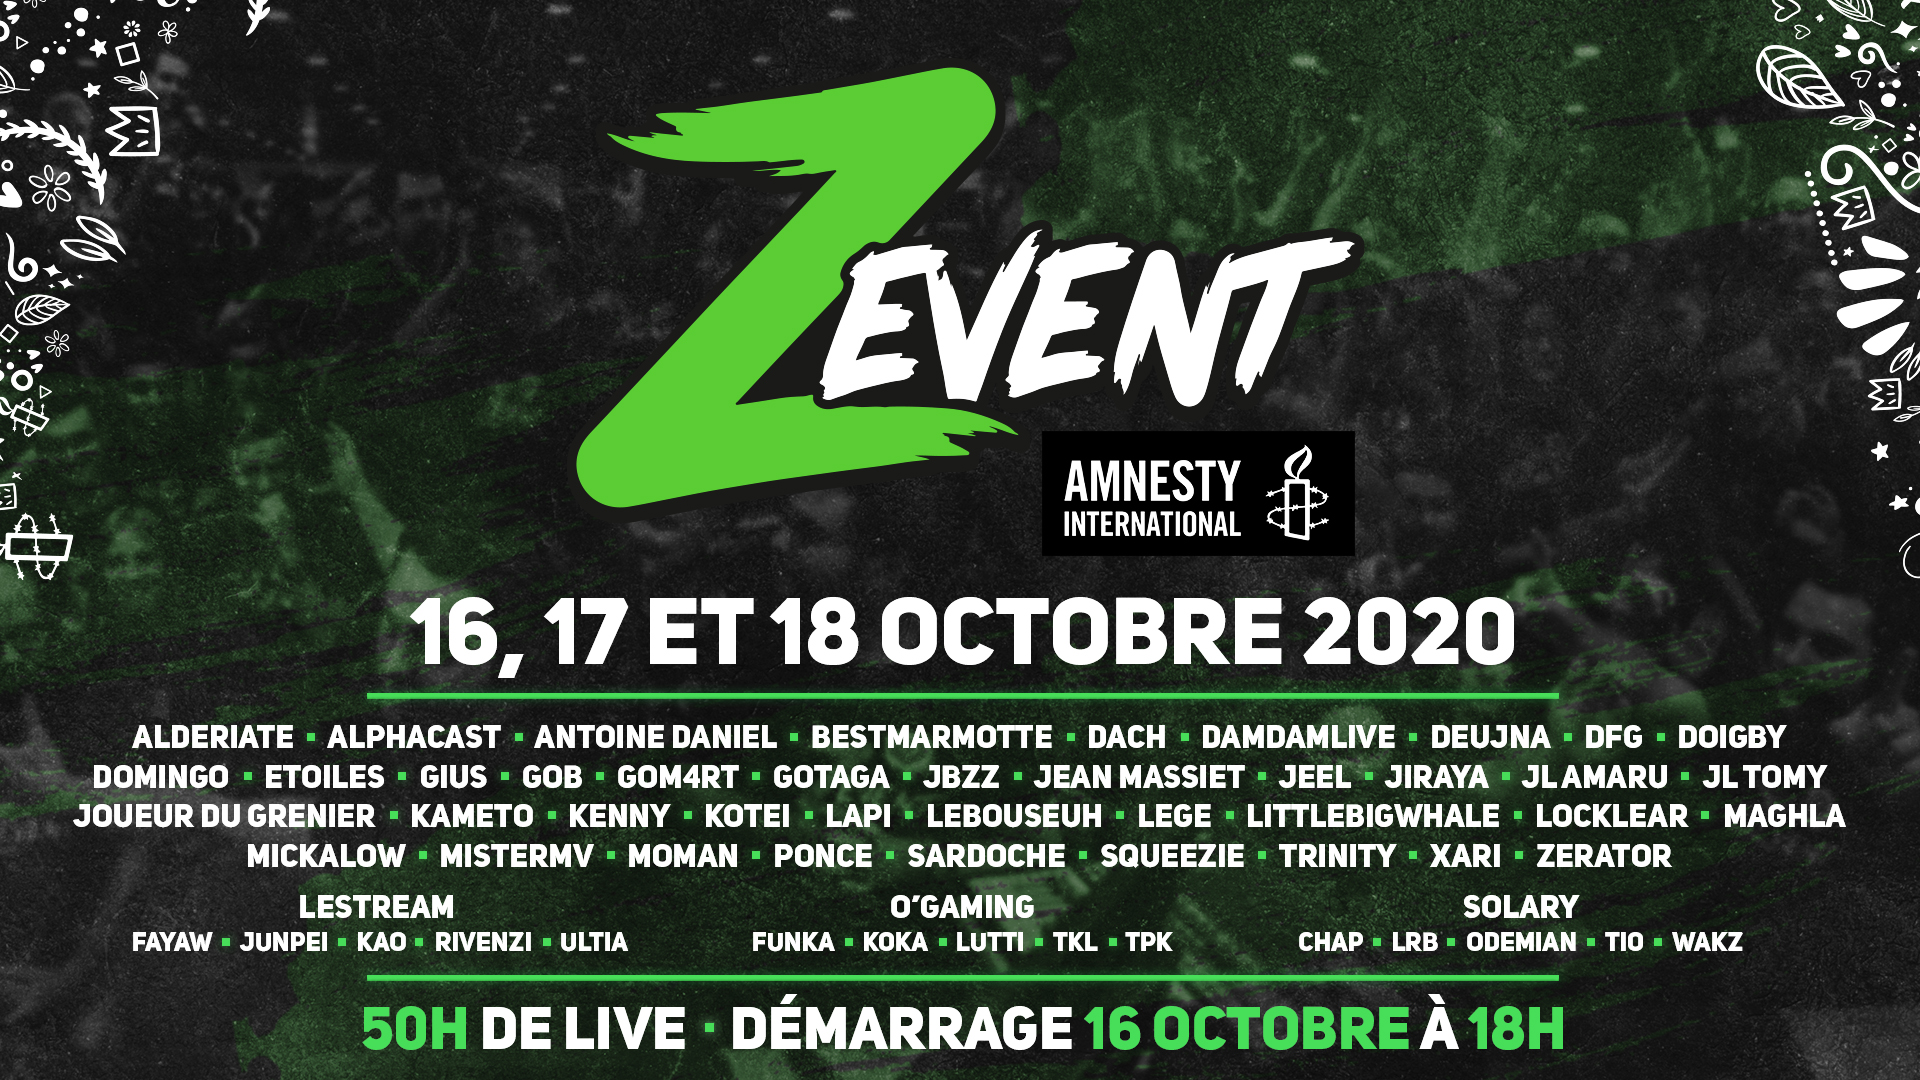 Z Event : l'édition 2020 aura lieu du 16 au 18 octobre au profit d'Amnesty International !